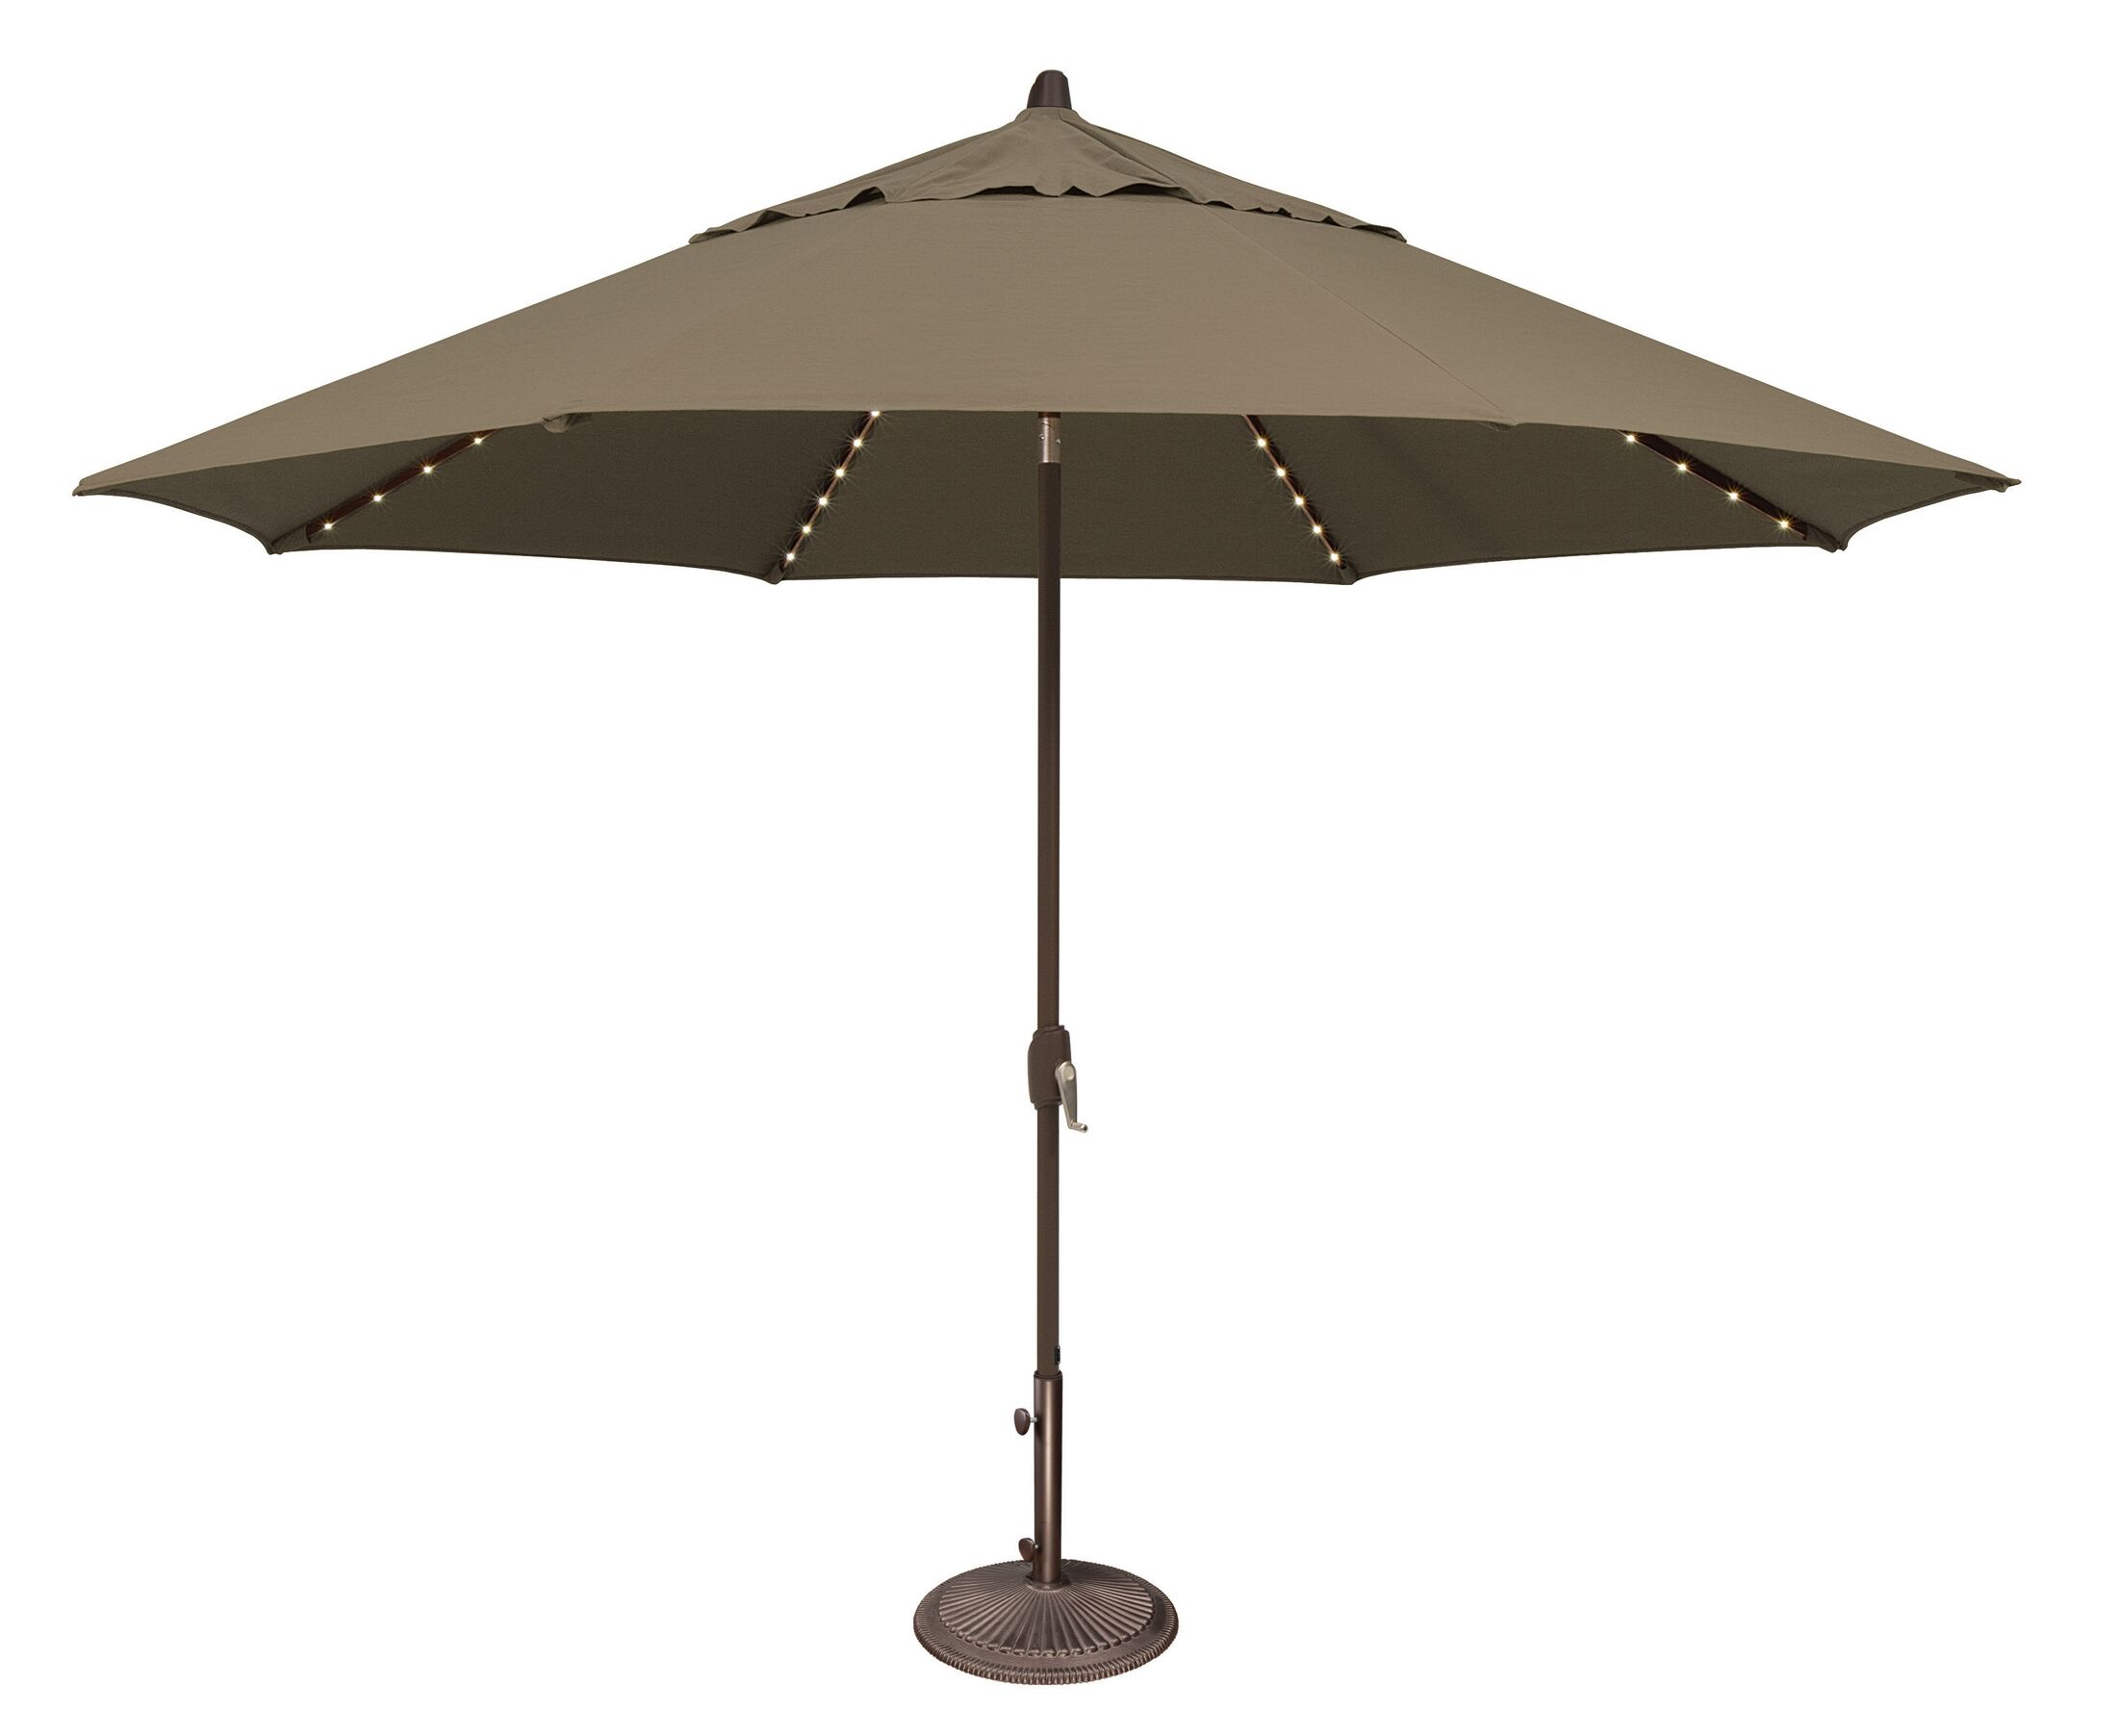 Lanai 11' Lighted Umbrella Fabric: Solefin / Taupe